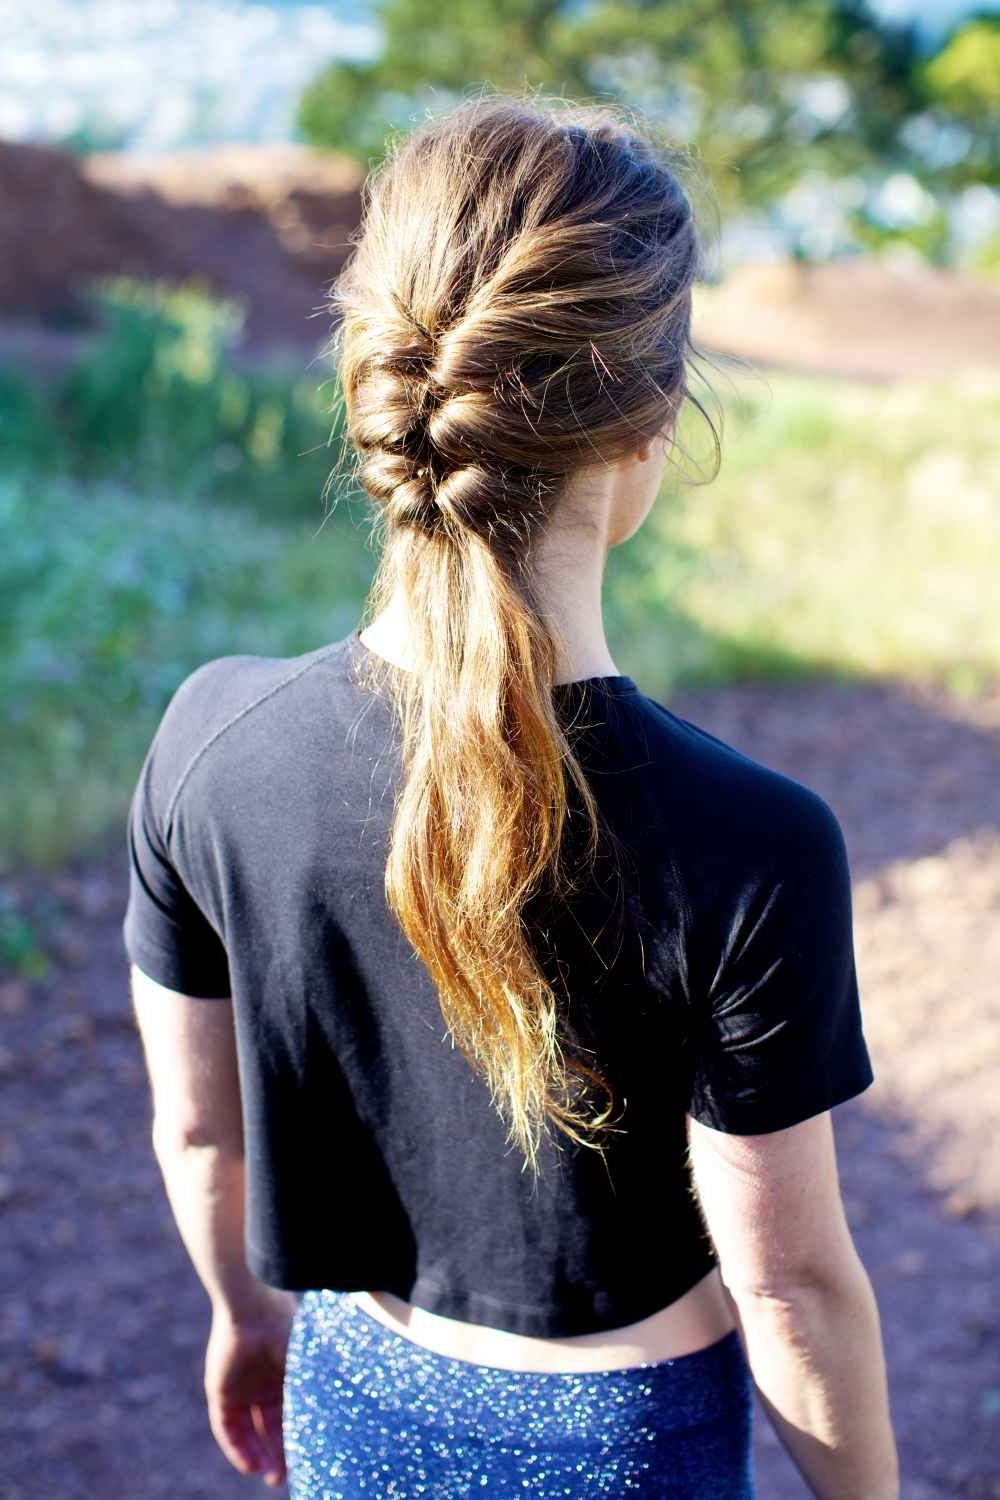 5 'Dos Made For Active Ladies | Hair Styles, Workout Hiking Hairstyles For Medium Hair